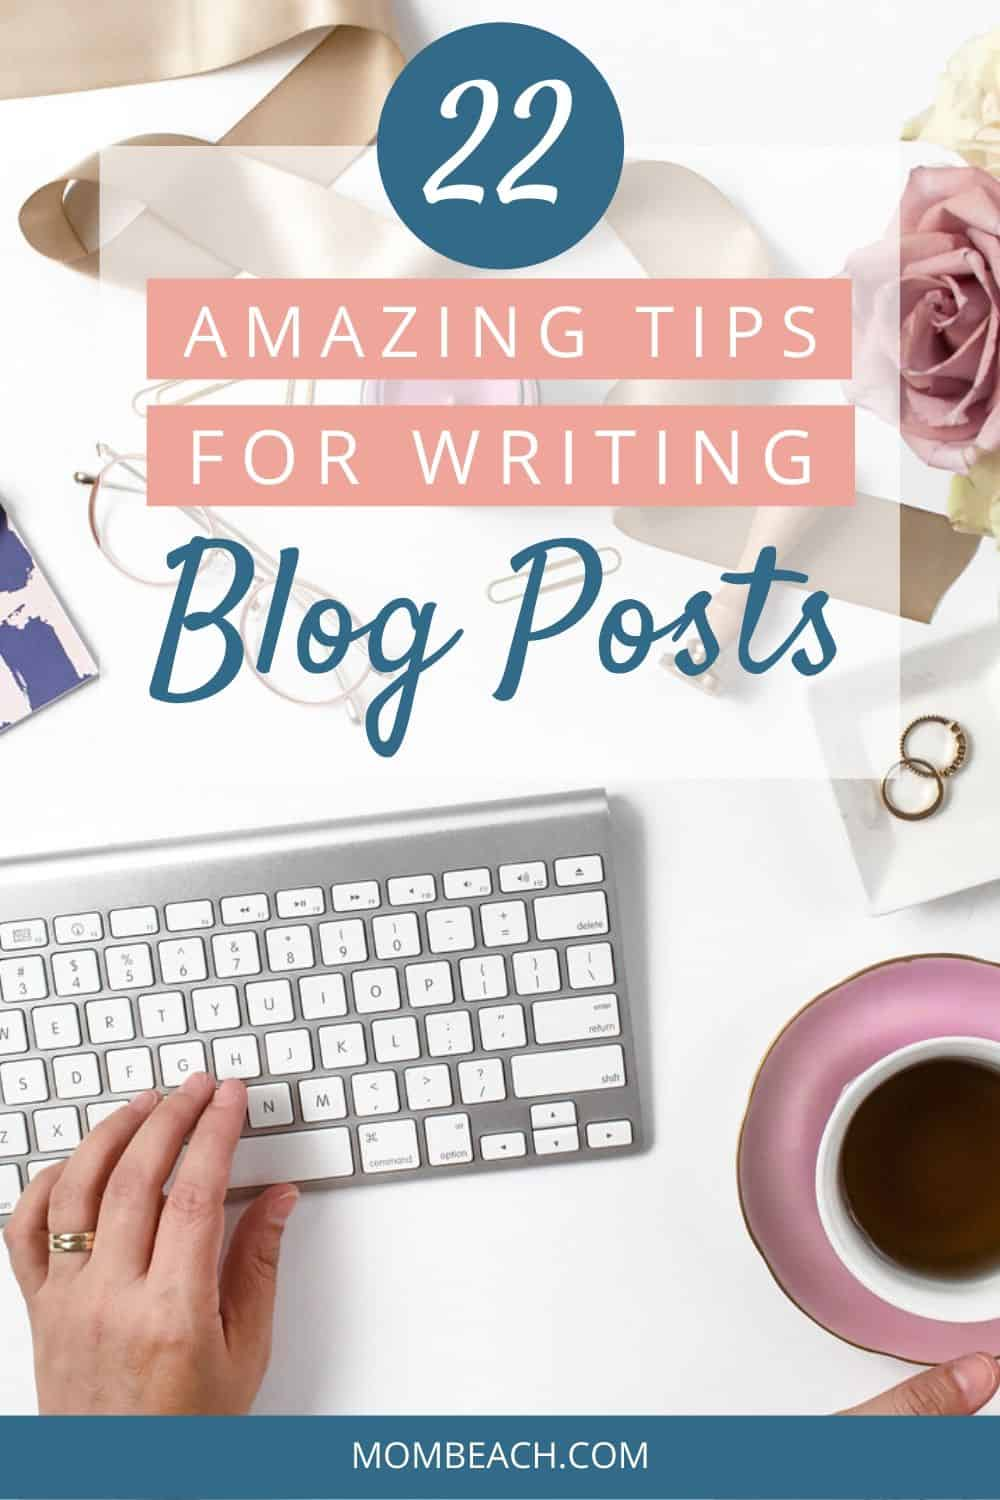 Write better blog posts by using these 22 amazing tips. You can improve your writing with ease with these tips. Use creative writing prompts and more to improve your blog post writing. Writing skills can be improved quickly by using these amazing tips. #blogging #improvewriting #blogwriting #blogging101 #blogposts #writing #writingskills #writer